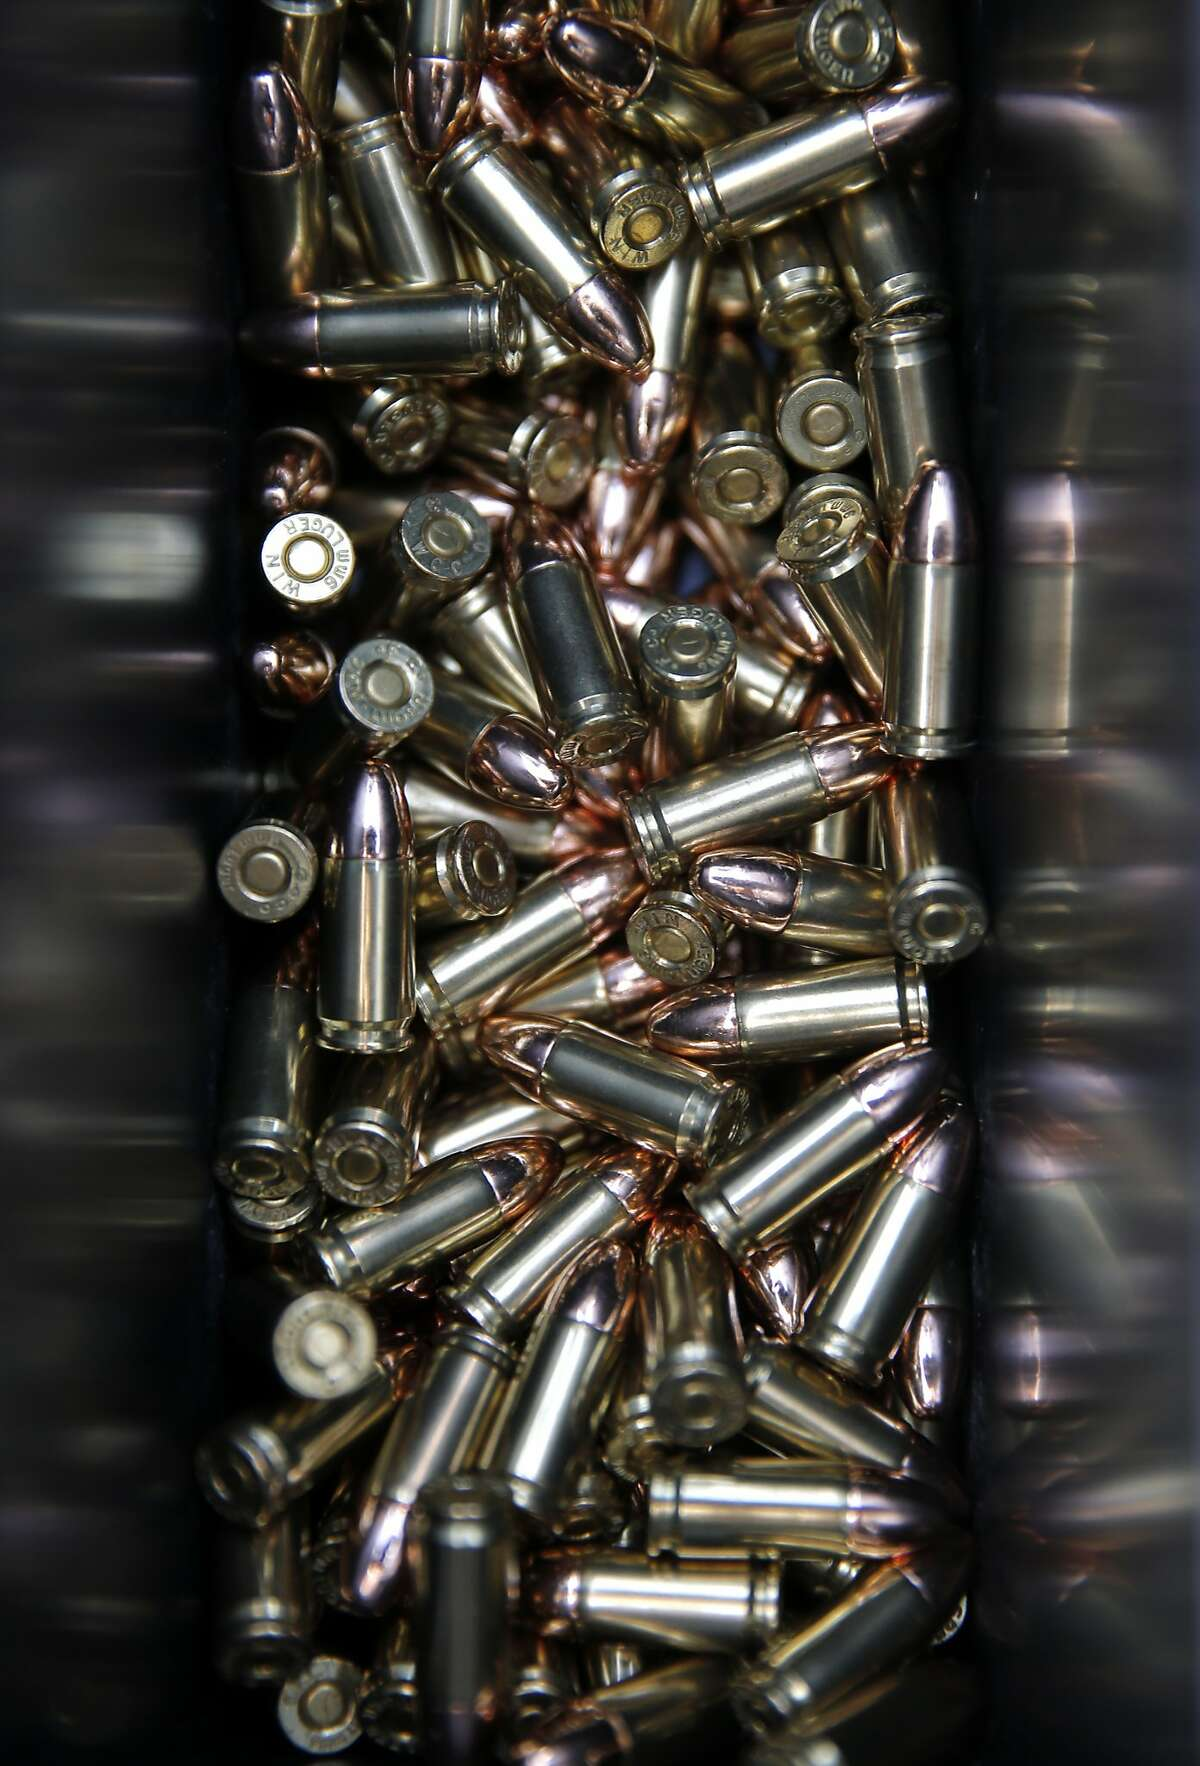 An Ammo box is filled with 9mm bullets as members participate in an Action Pistol practice event at the Richmond Rod and Gun Club in Richmond, Calif.on Saturday December 12, 2015.